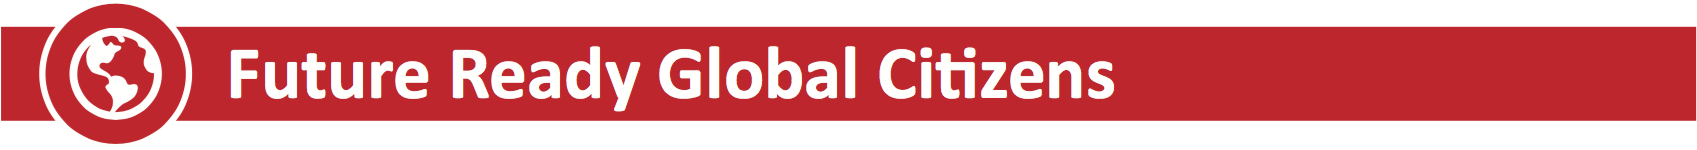 Future Ready Global Citizens